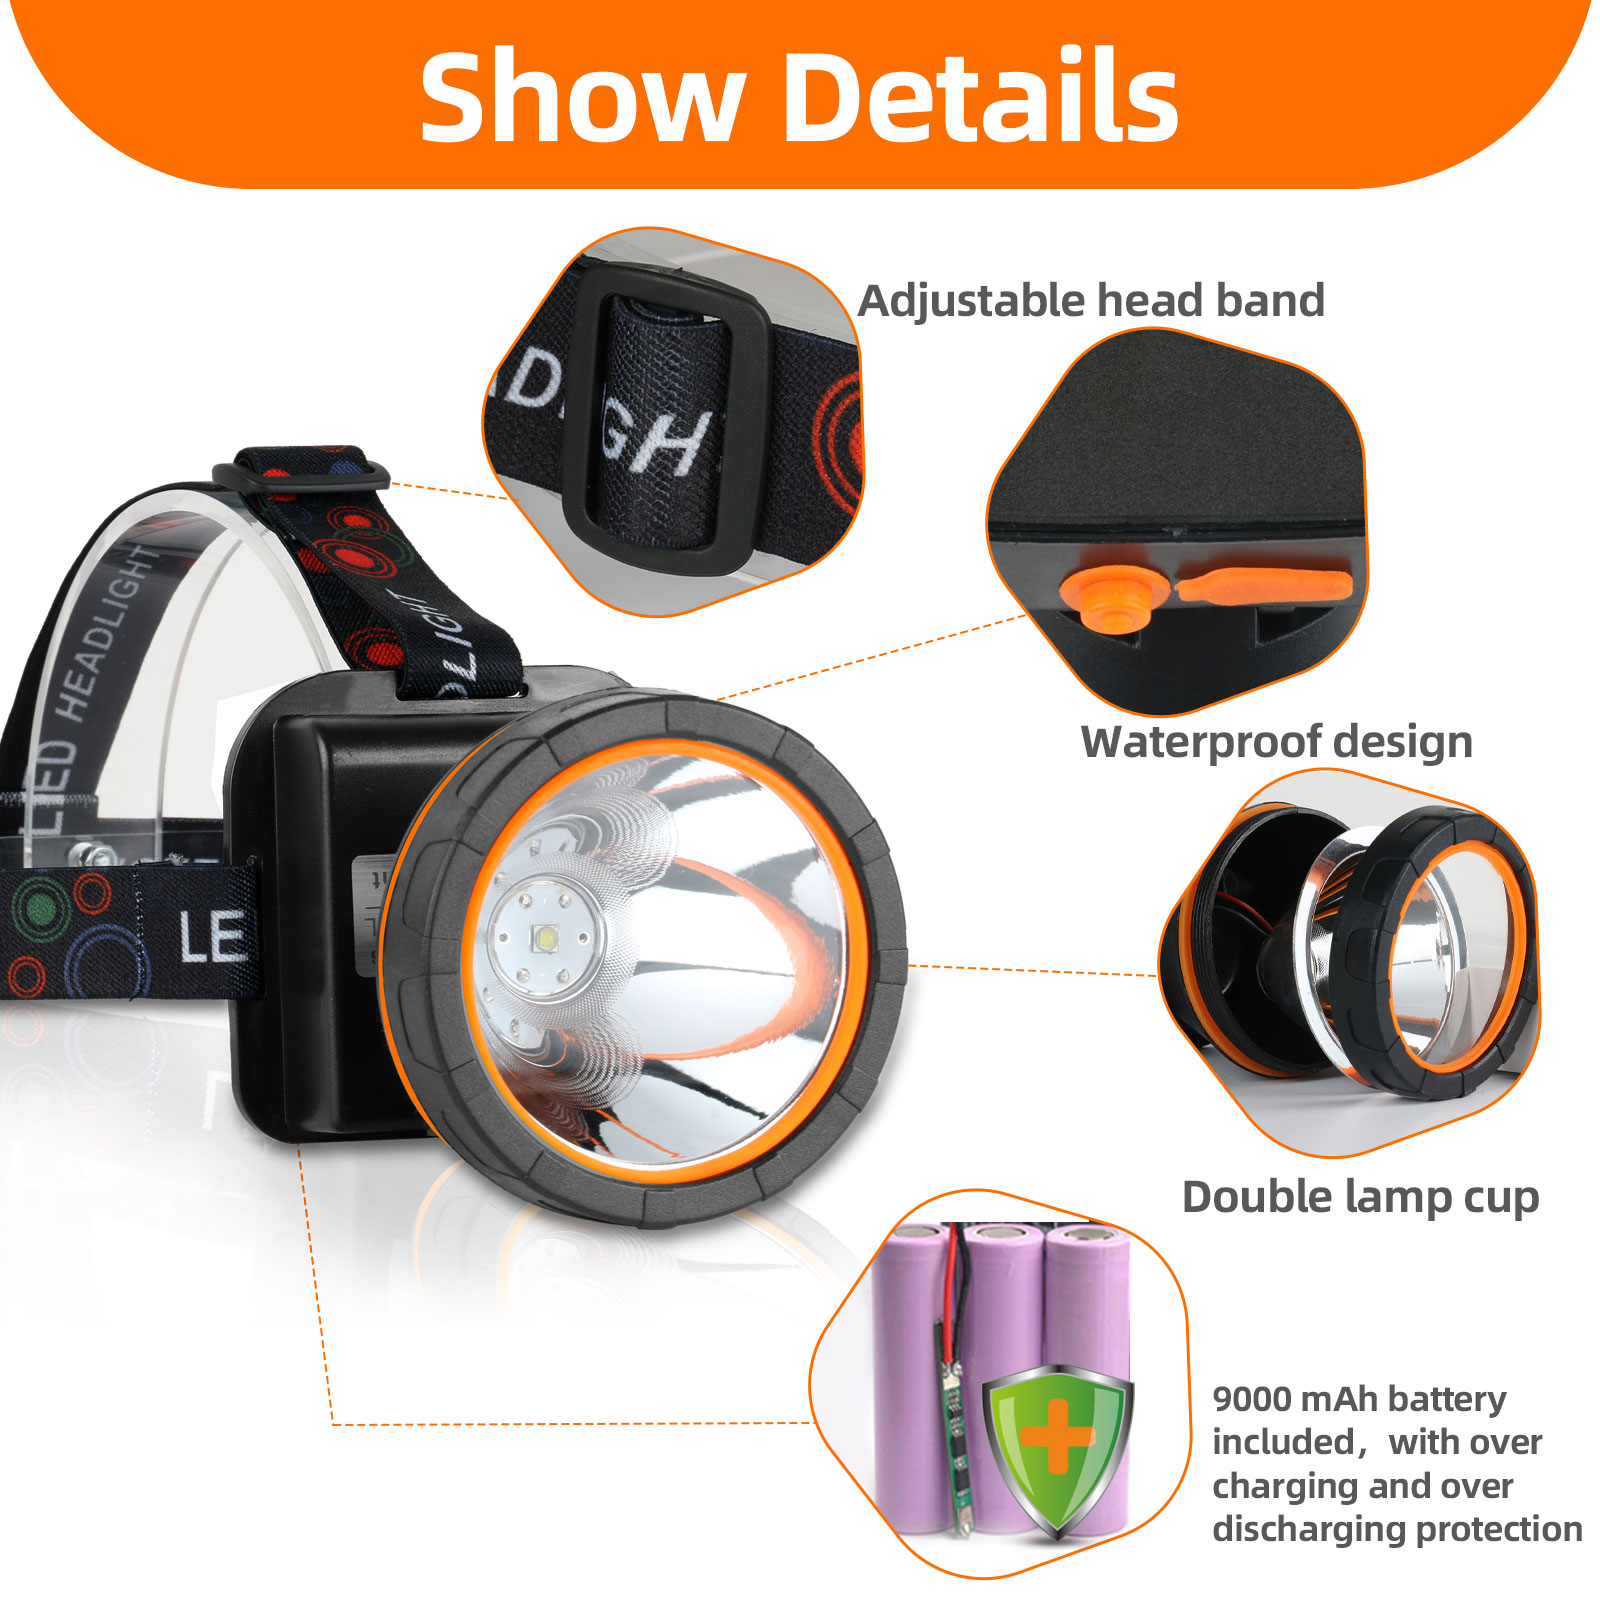 12pcs/lot Super Bright LED Headlamp Water Resistant Head Torch Built-in 3x18650 Rechargeable Batteries 2 light modes Headlight enlarge